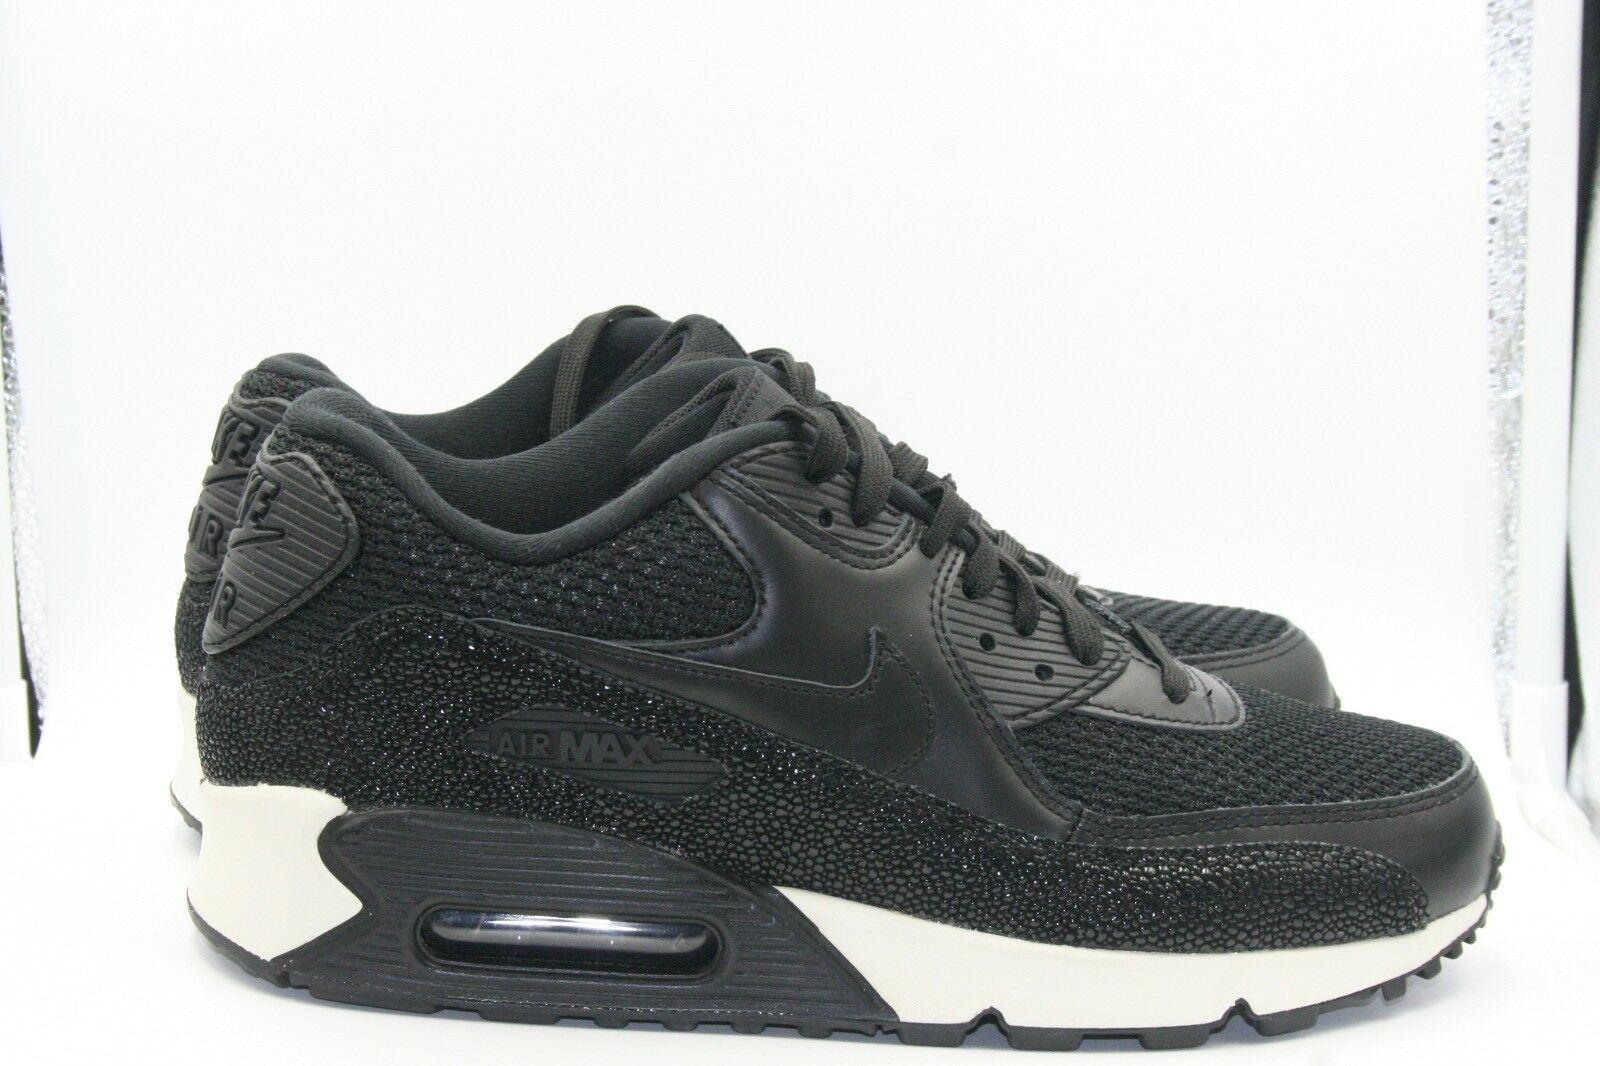 Nike Air Max 90 Stingray Pack Size 9 Black White